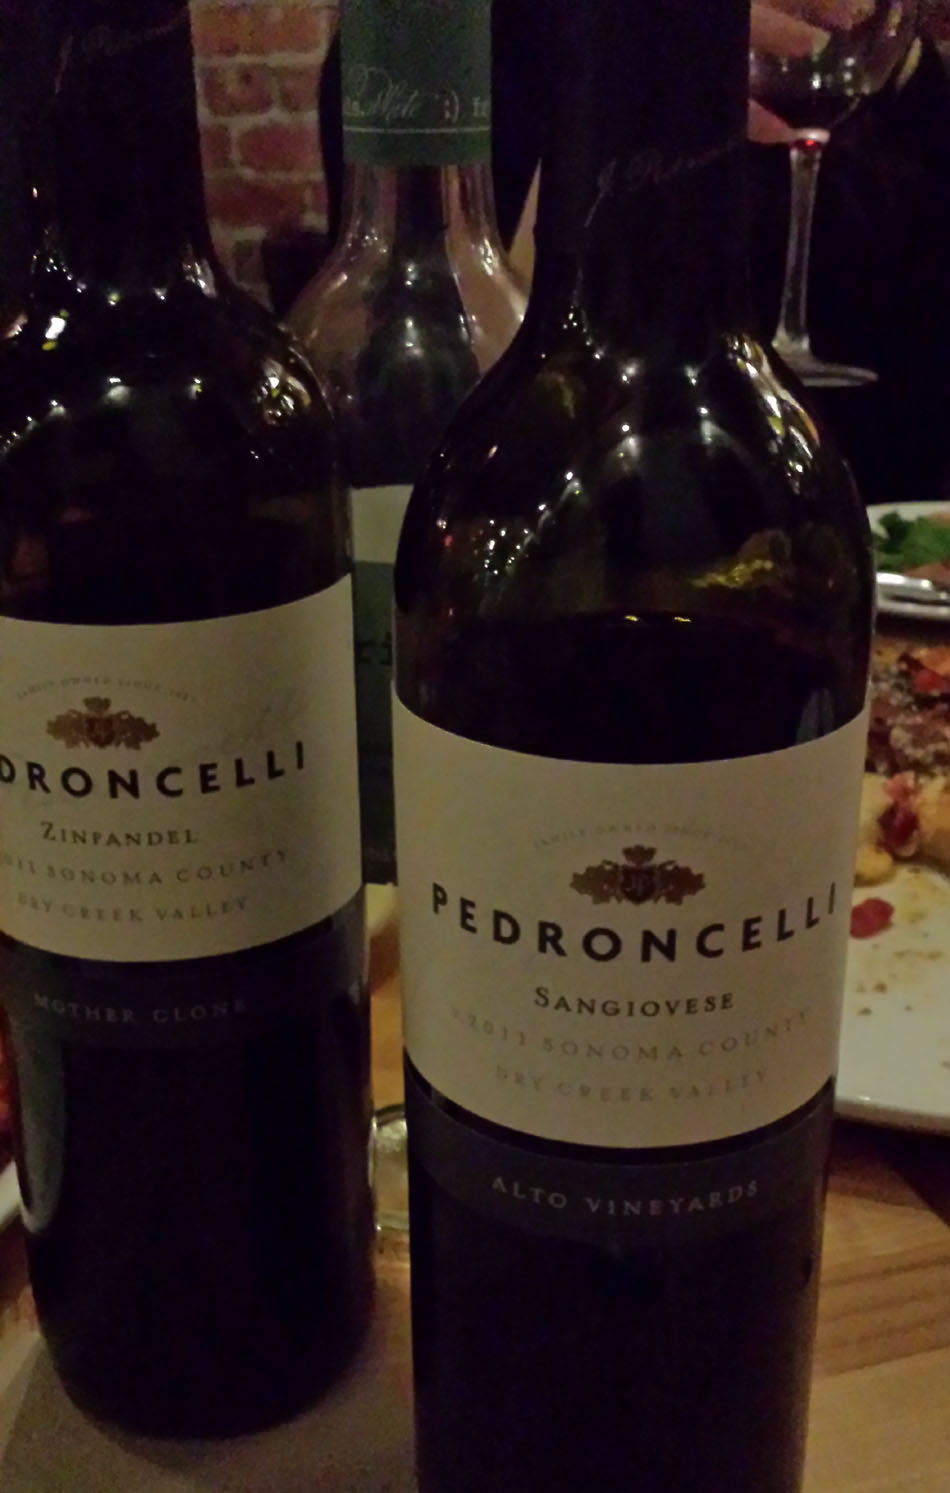 Outstanding Pedroncelli Zinfandel & Sangiovese Wines